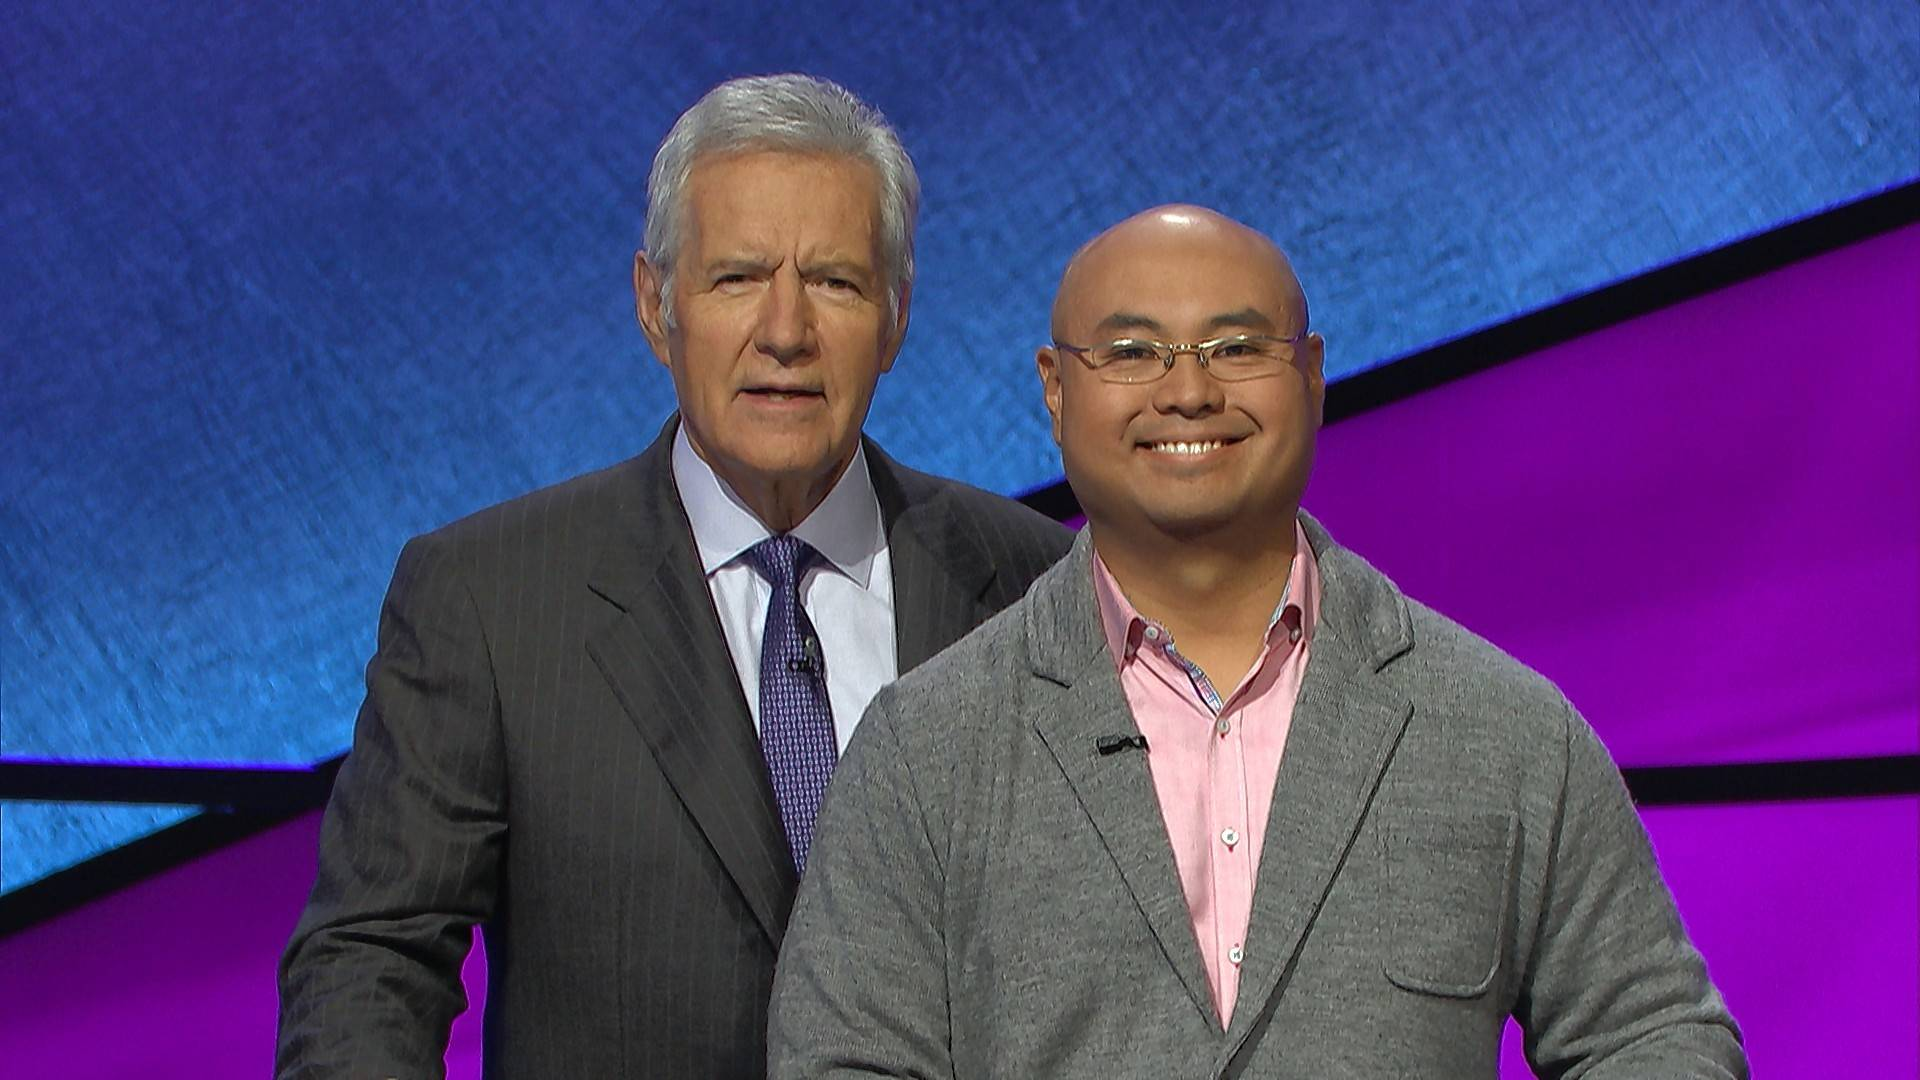 Wheaton resident appearing on 'Jeopardy!' next week